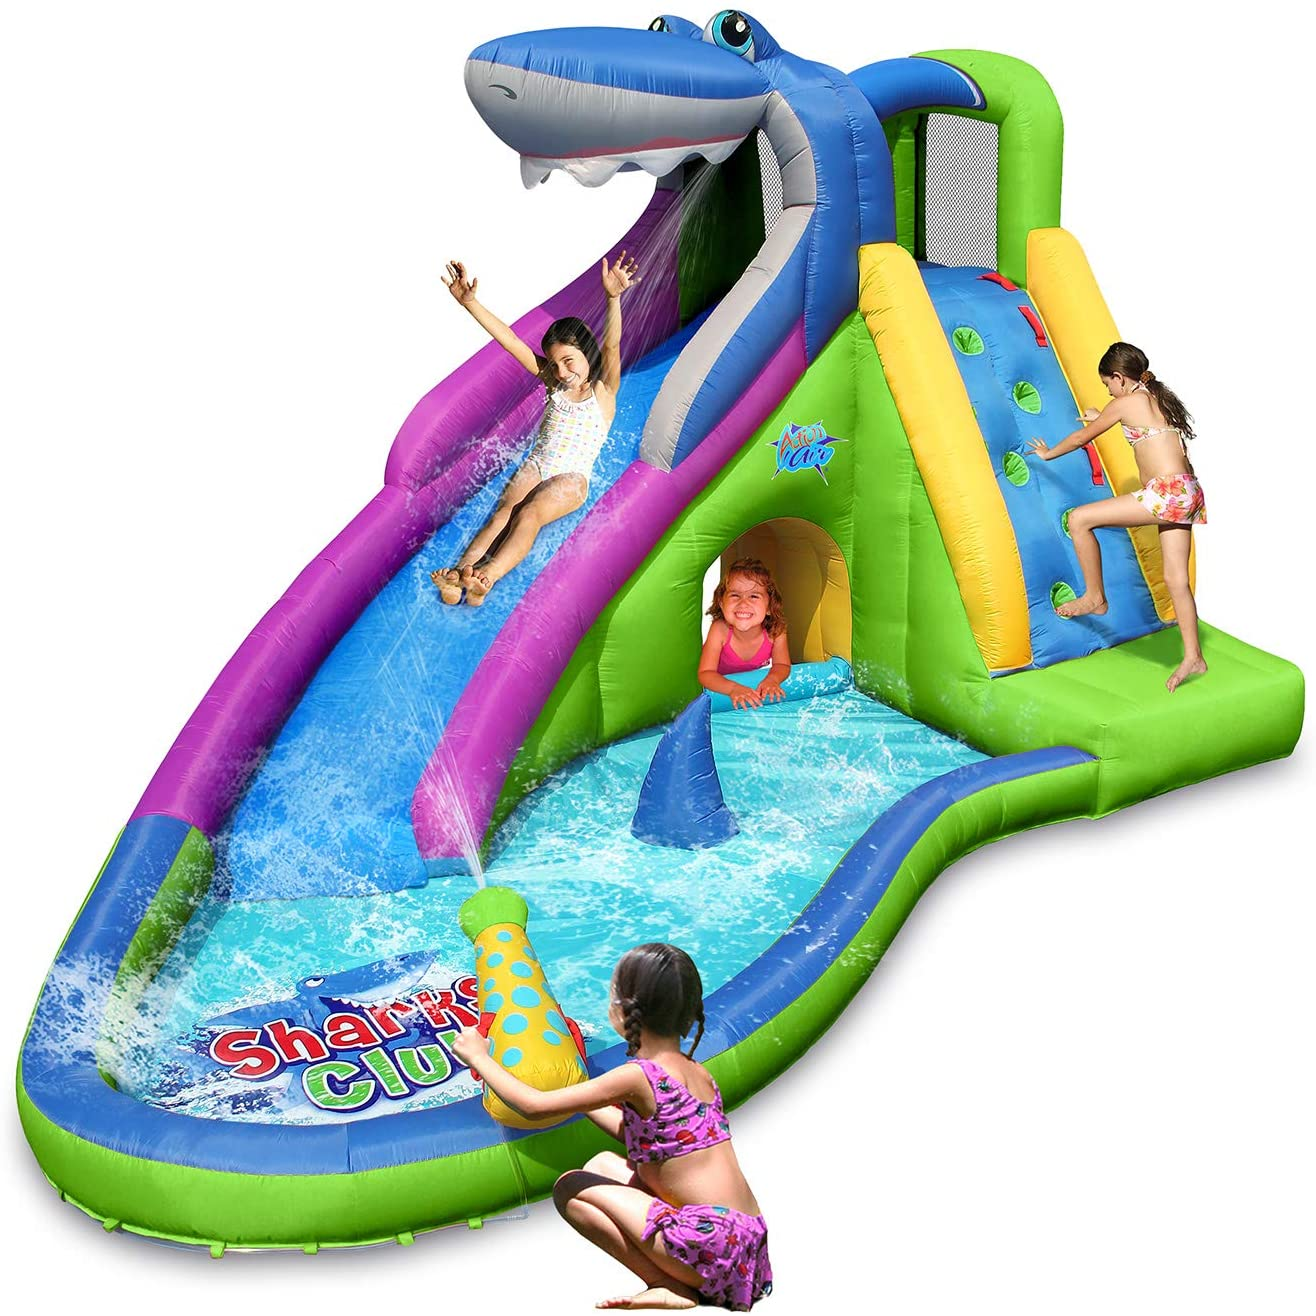 ACTION AIR Inflatable Waterslide, Shark Bounce House for Kids, Wet and Dry, 580W/0.8hp Air Blower Needed to Operate, Water Gun & Splash Pool (9417N-IP) Without Blower